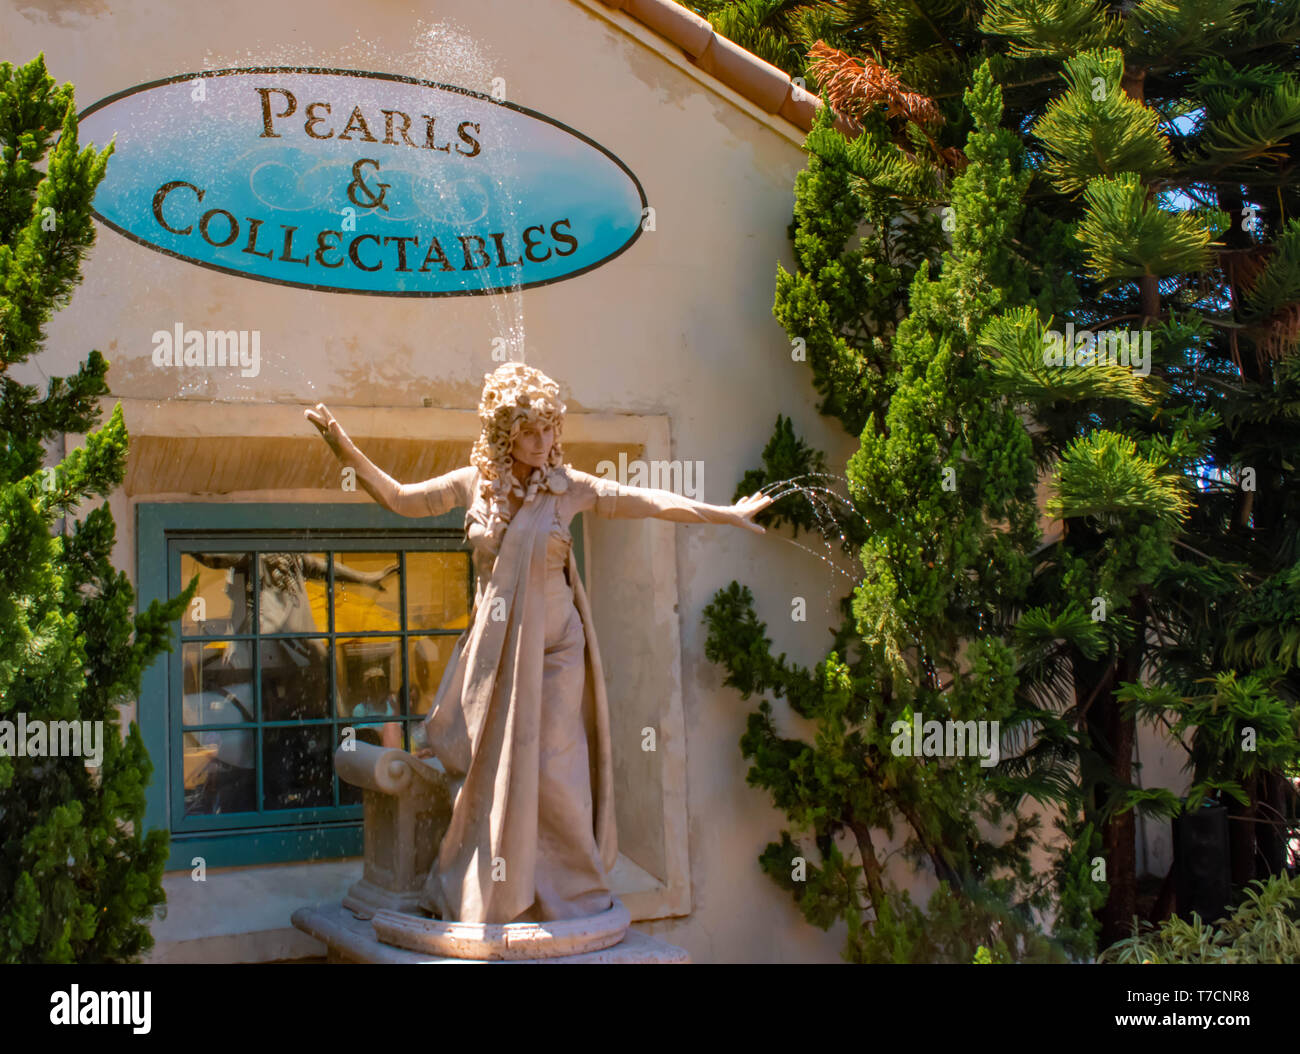 Orlando, Florida. April 20, 2019. Woman living statue throws small jets of water from her hands at Seaworld in International Drive area (2) - Stock Image